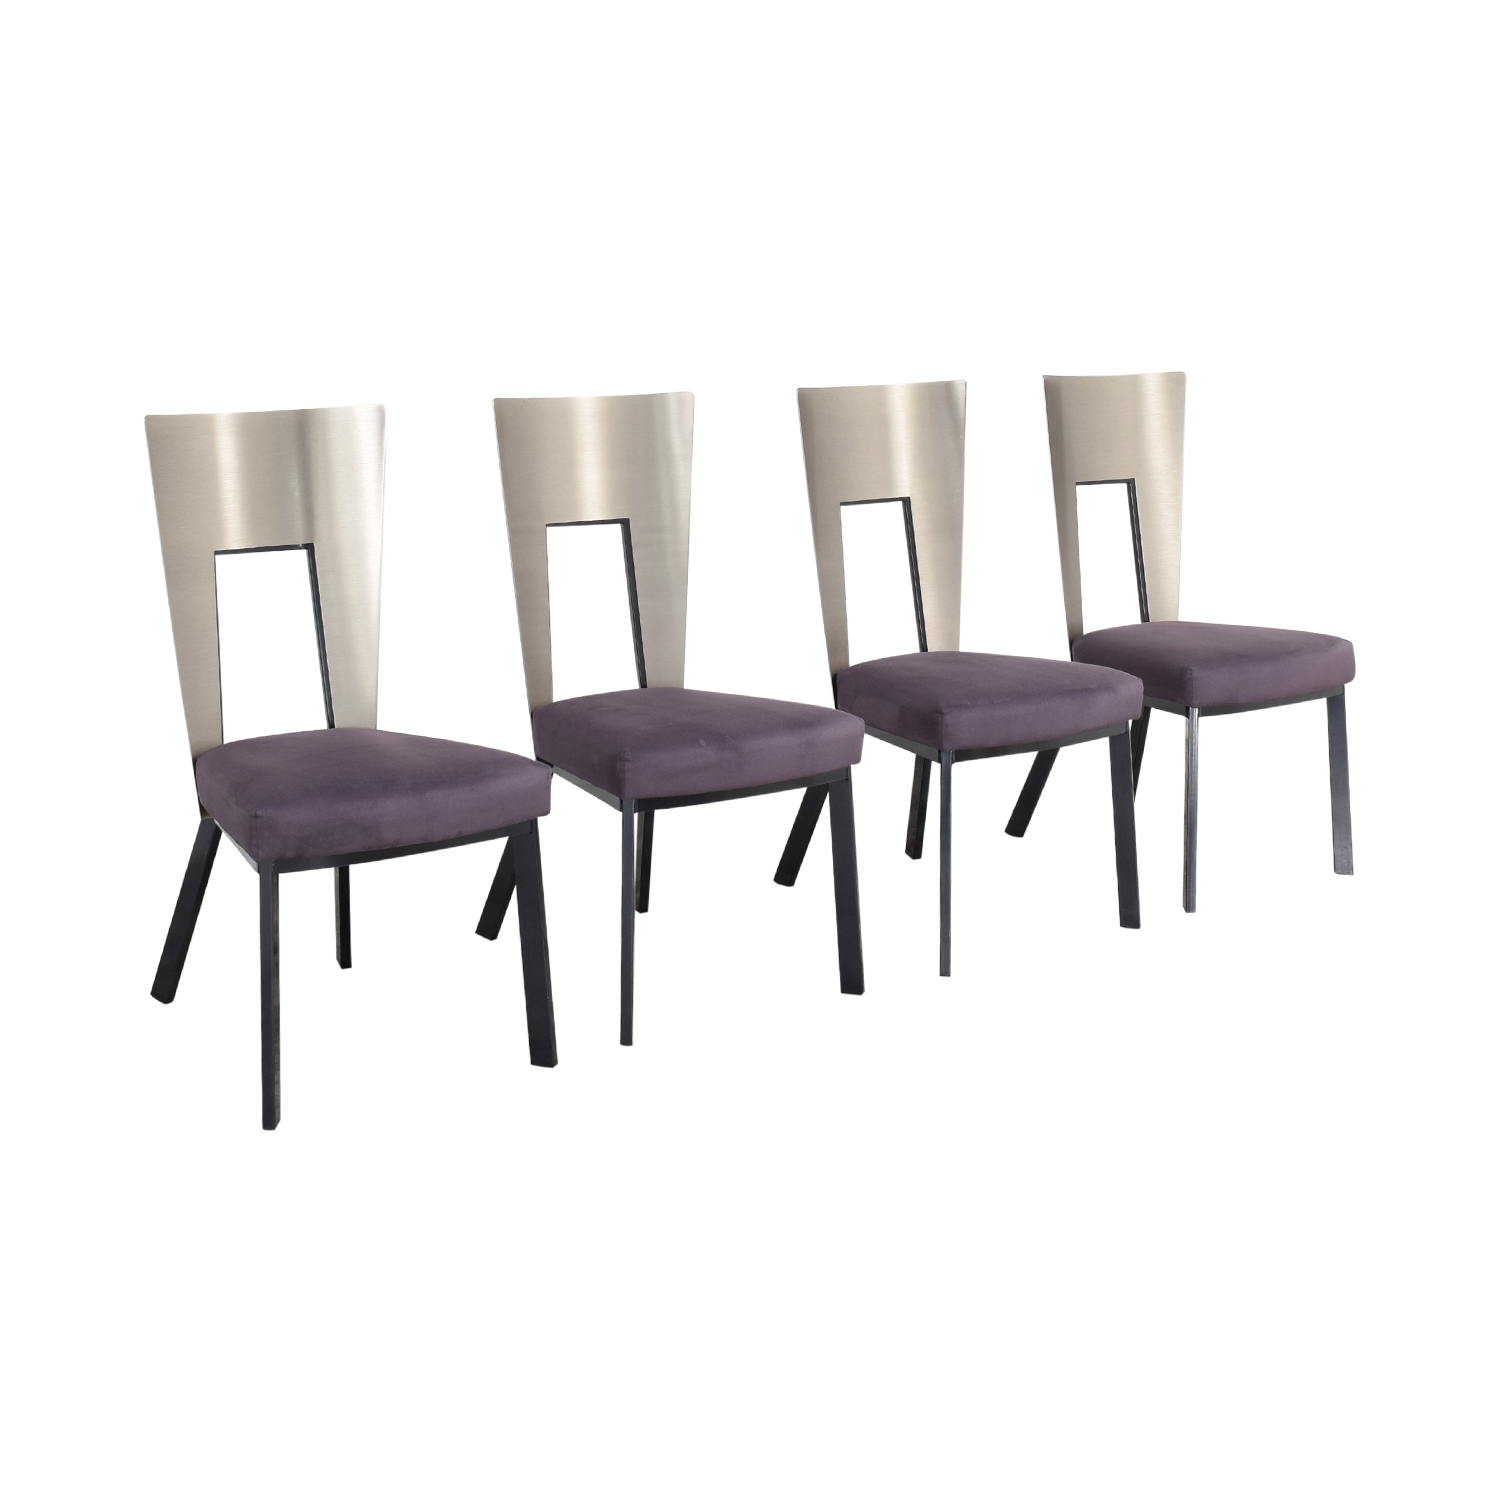 Elite Modern Elite Modern Regal Dining Chairs for sale